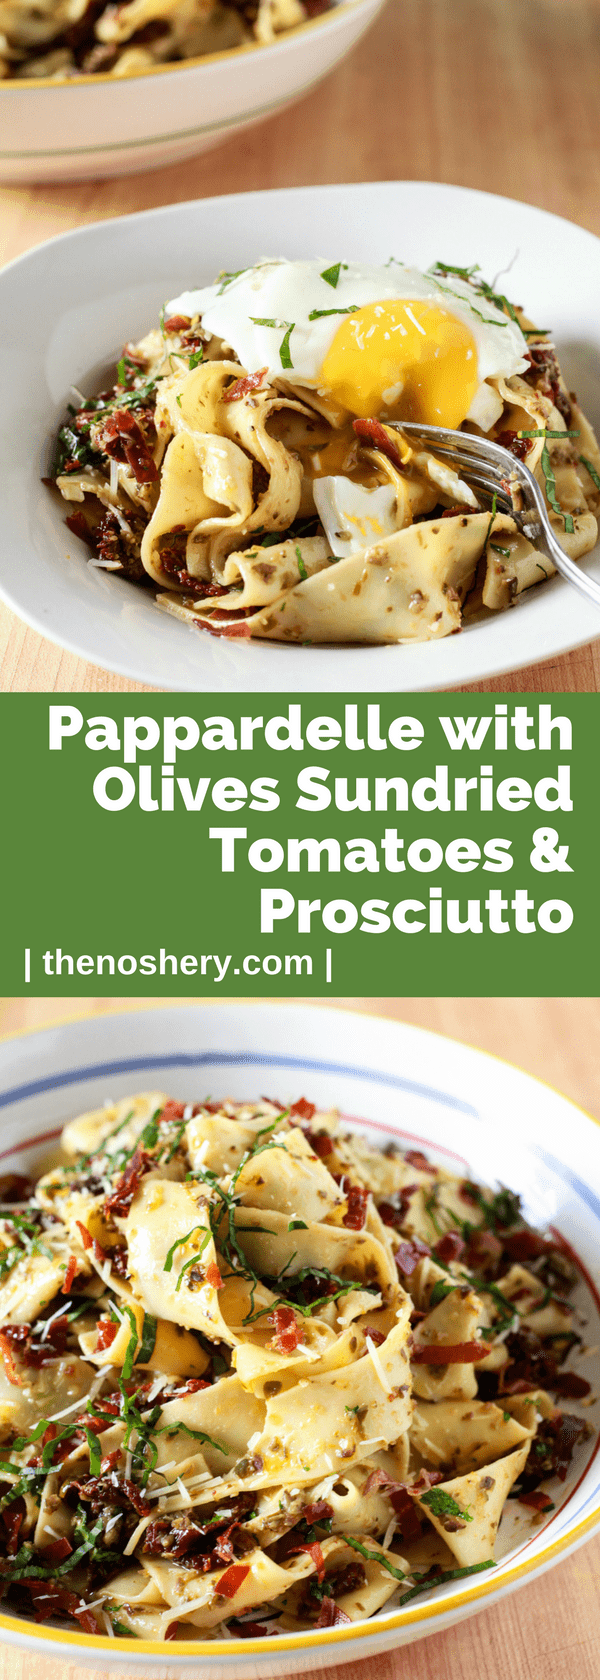 Pappardelle with Olives Sundried Tomatoes & Prosciutto | Broad pappardelle noodles toss in a briny and salty olive tapenade with sweet sun-dried tomatoes and crispy prosciutto. Take it over the top with a runny fried egg. | The Noshery